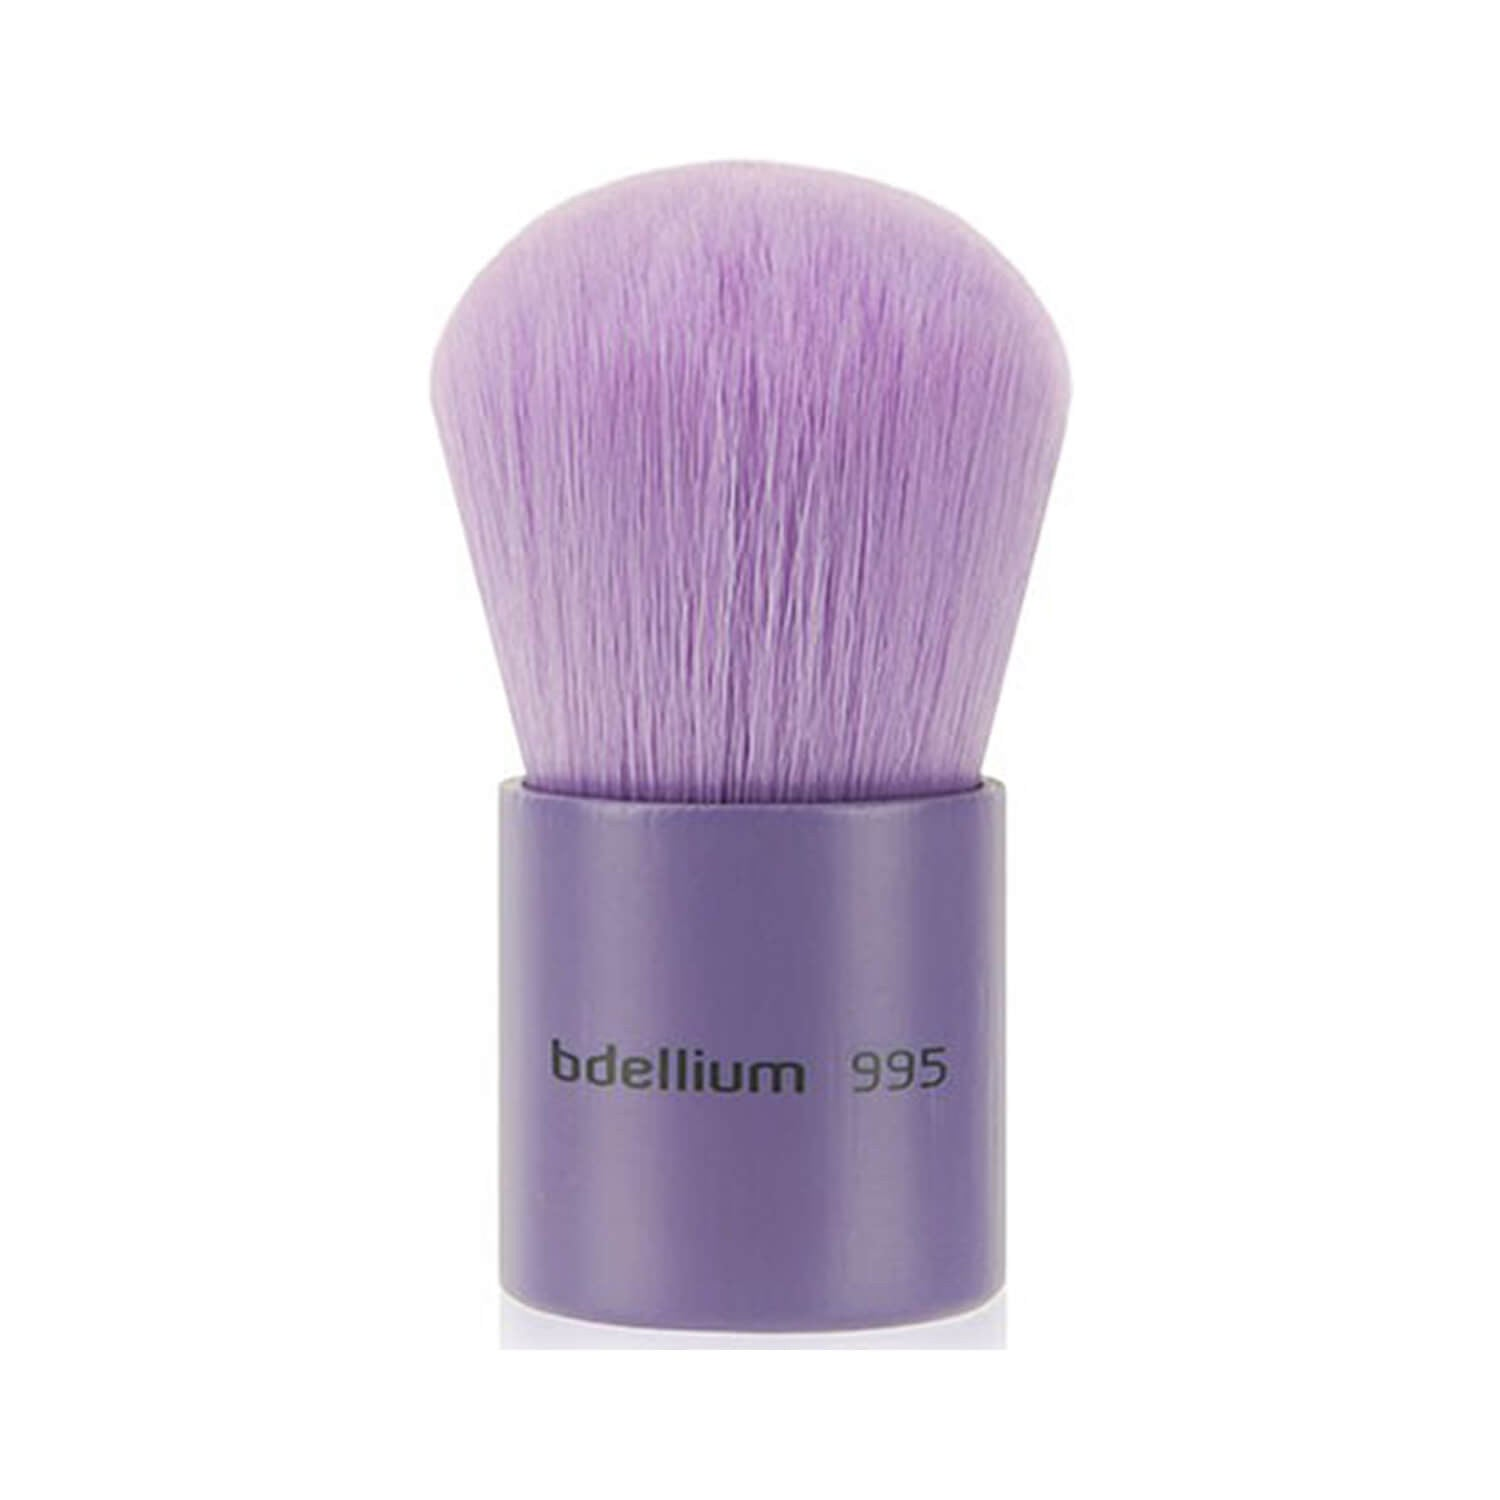 BDellium Tools Purple Bambu 995 Kabuki Brush Purple